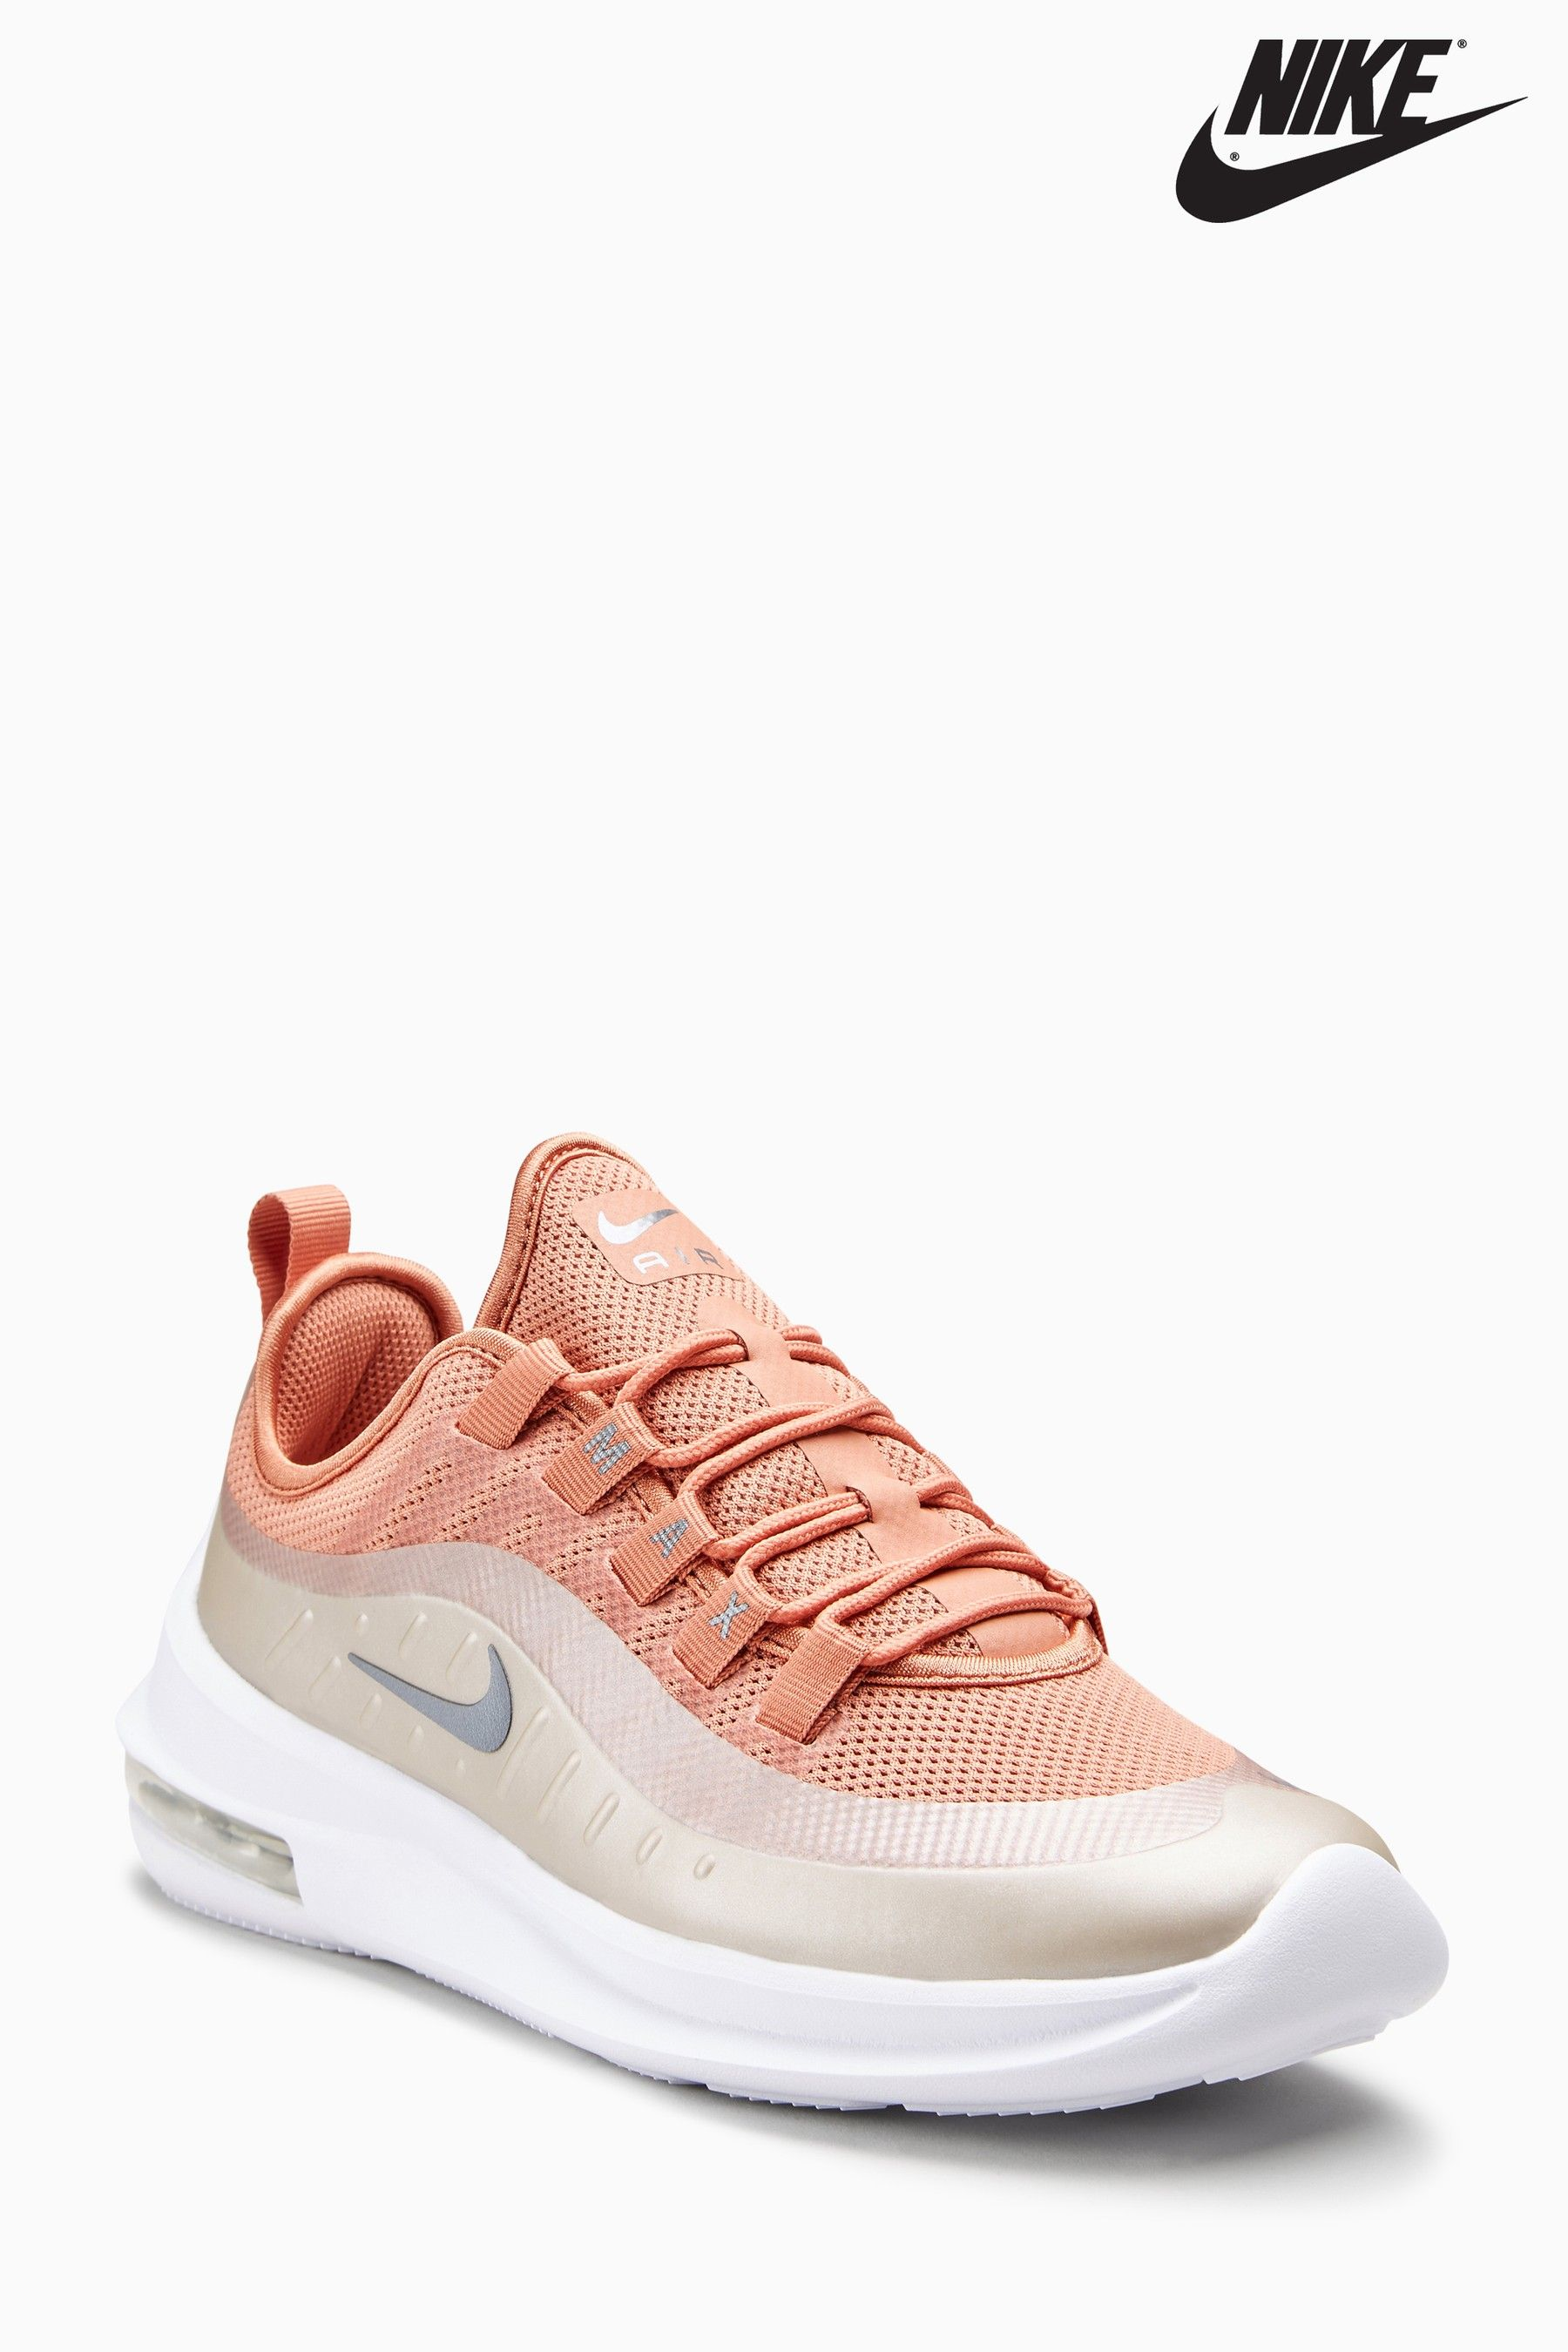 55f5c48e34 Womens Nike Air Max Axis - Pink | Products | Nike air max, Nike air ...